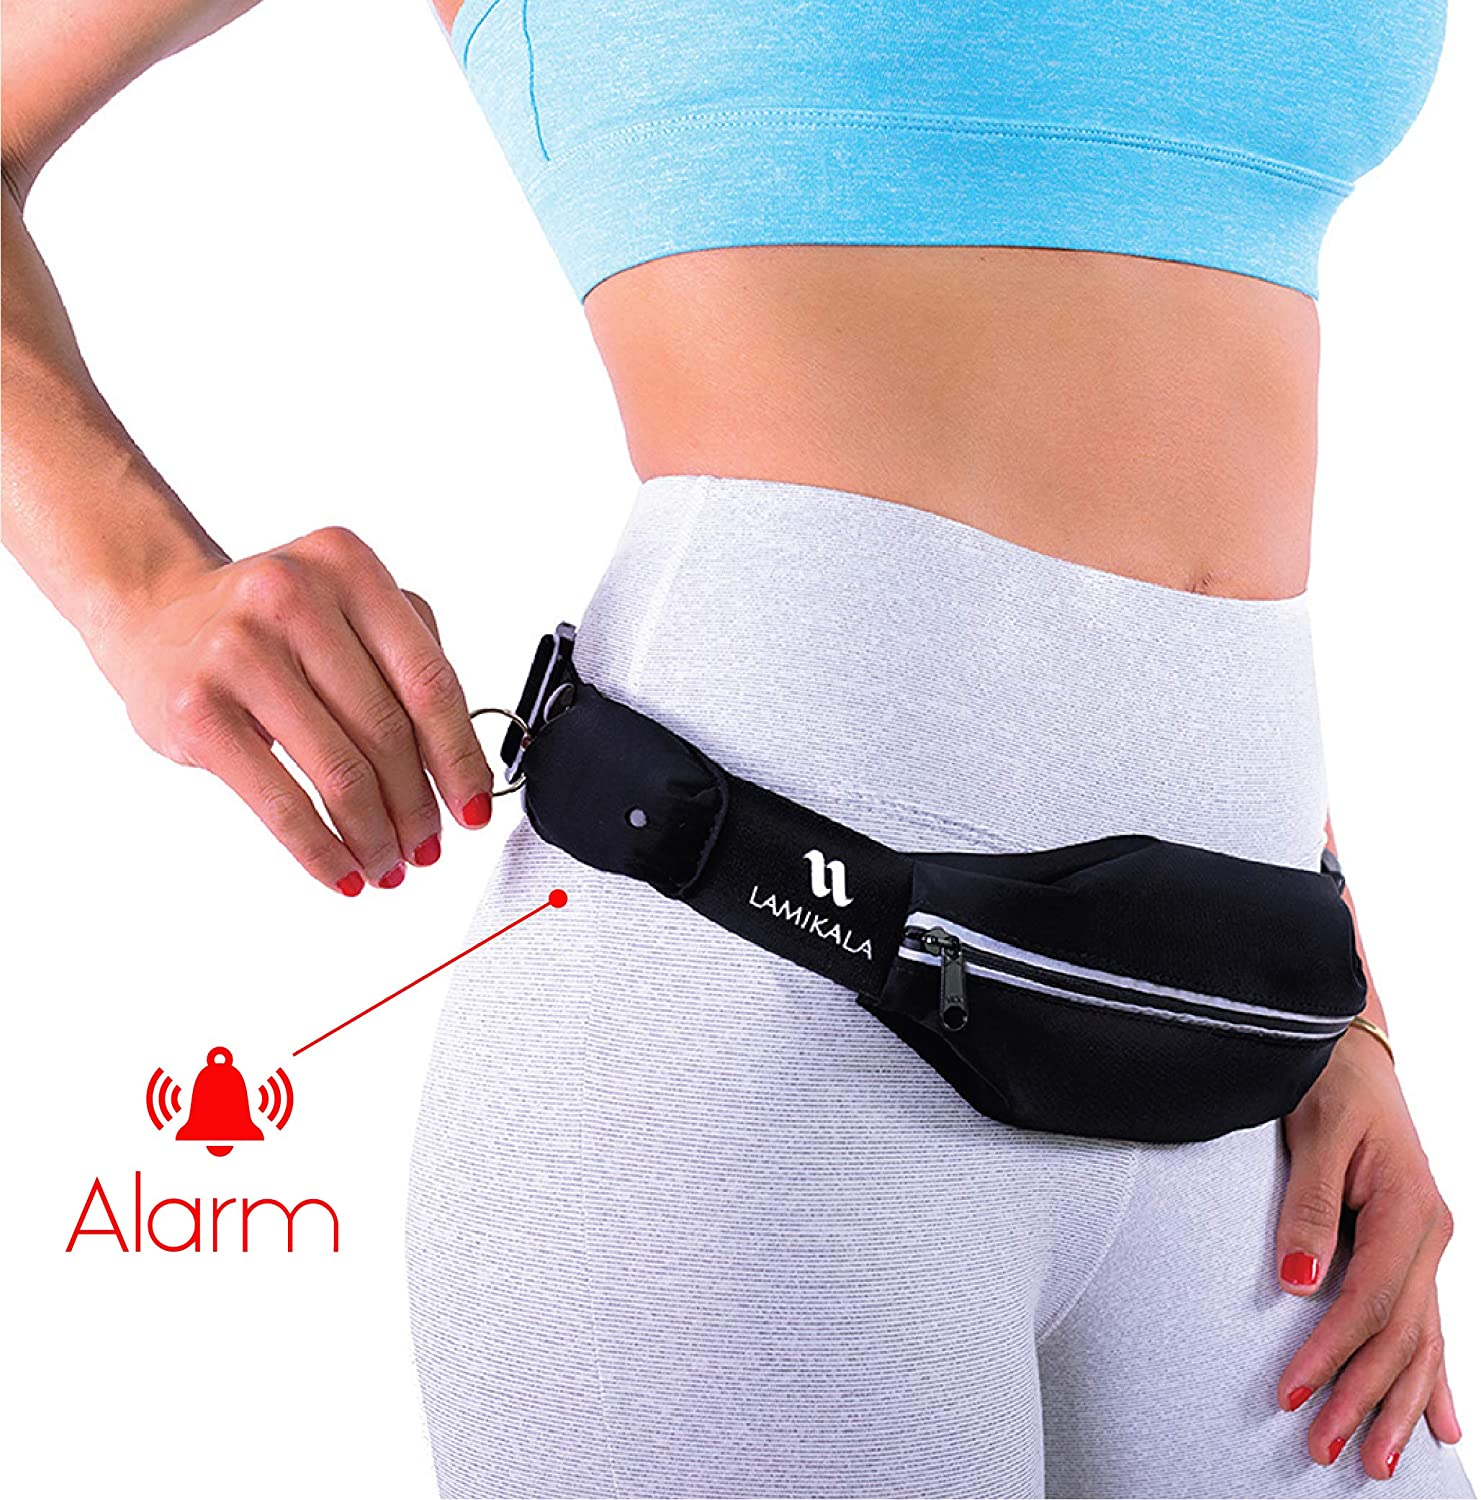 Lamikala Running Belt Fanny Pack with Personal Alarm, Slim Waist Pack Pouch for Runners Safety